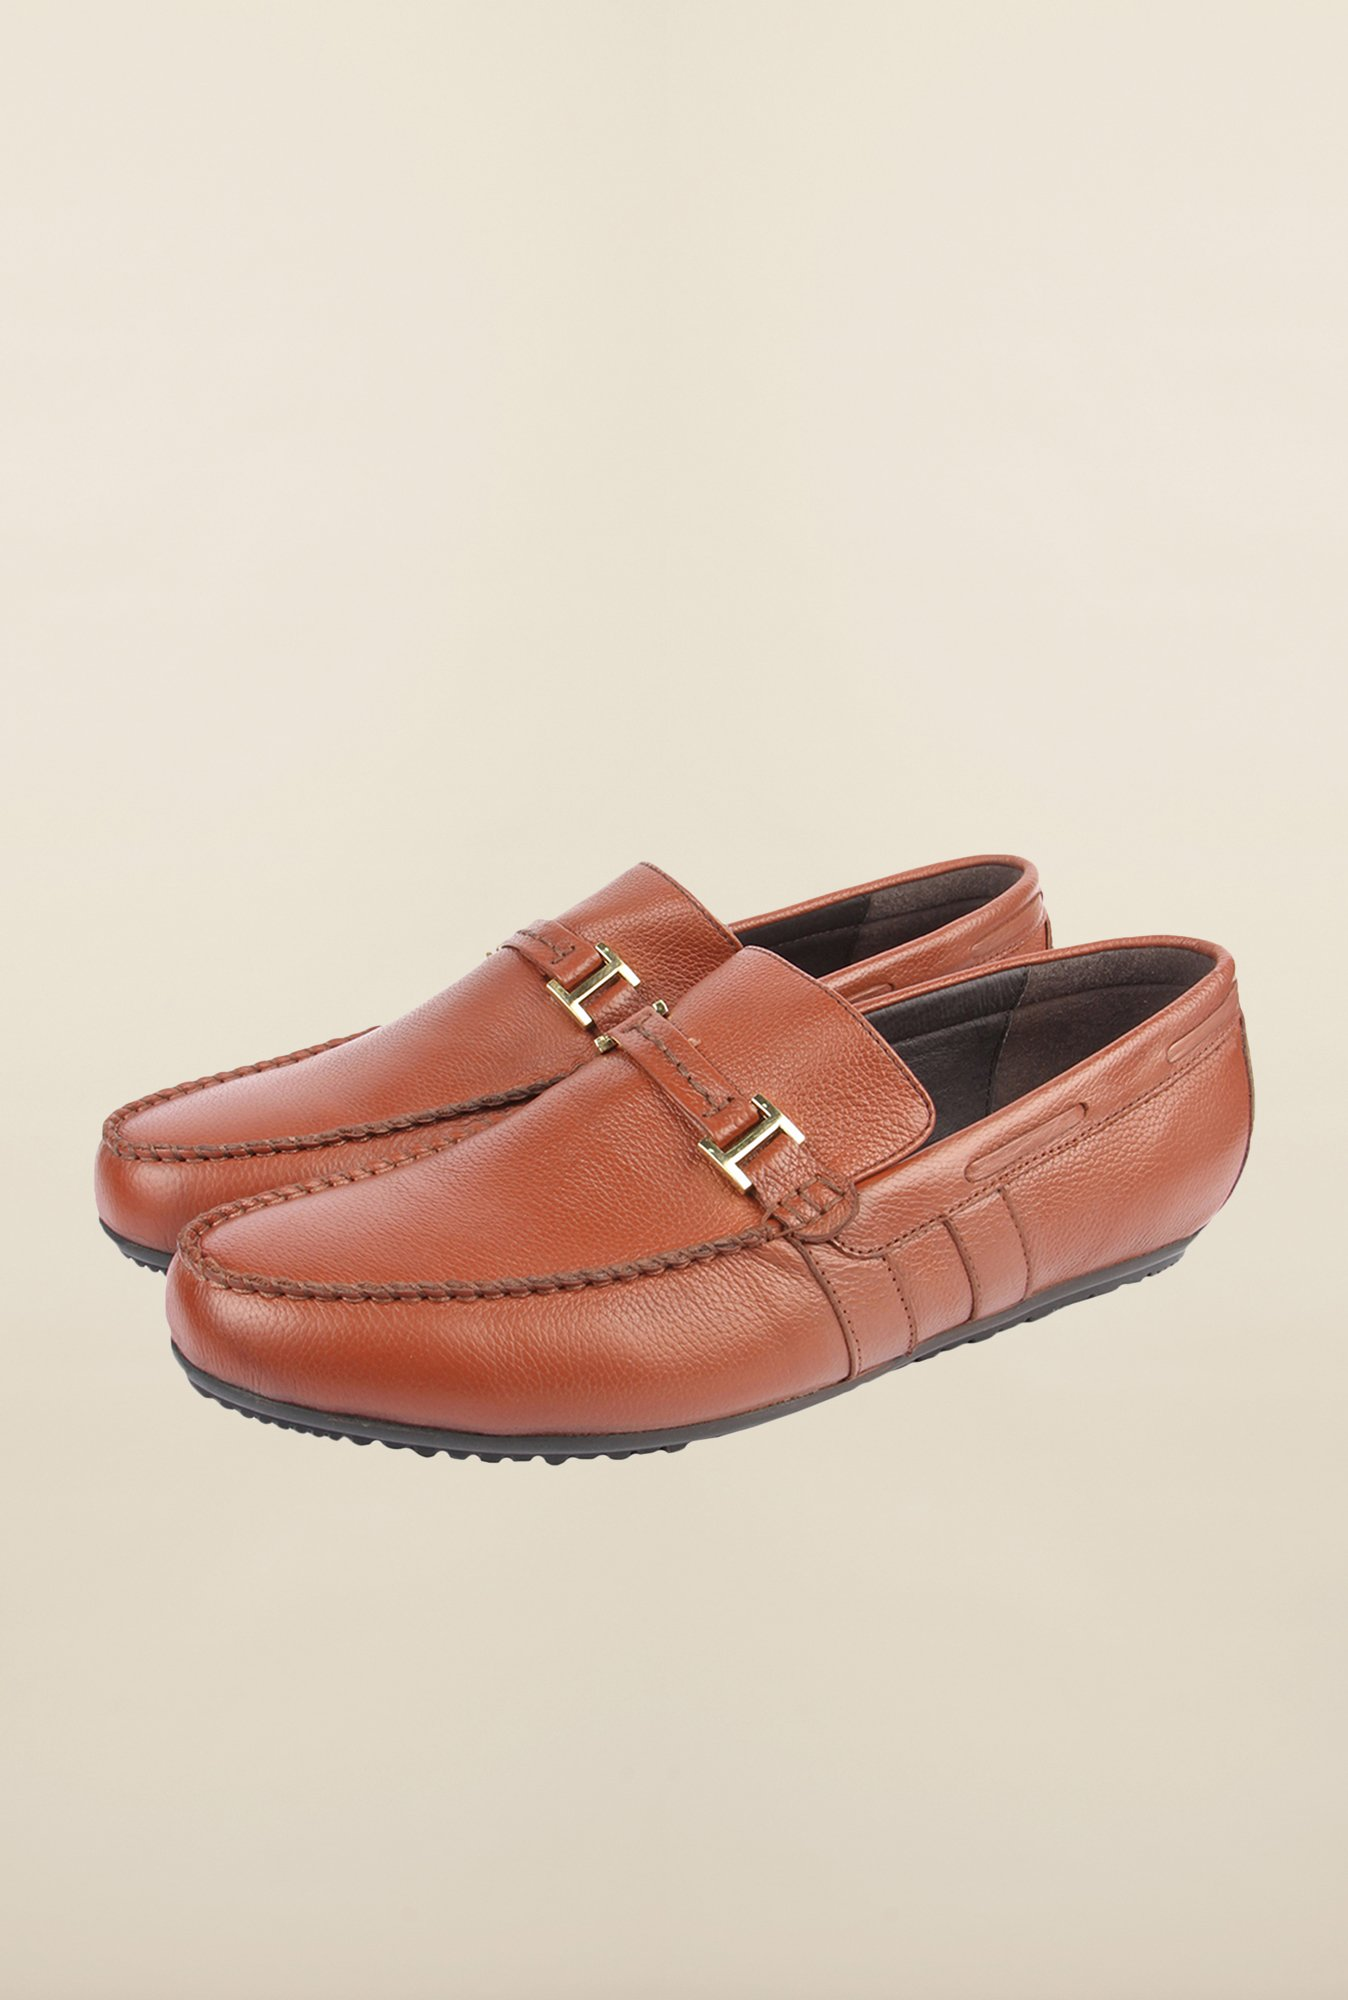 Cobblerz Brown Moccasin Shoes